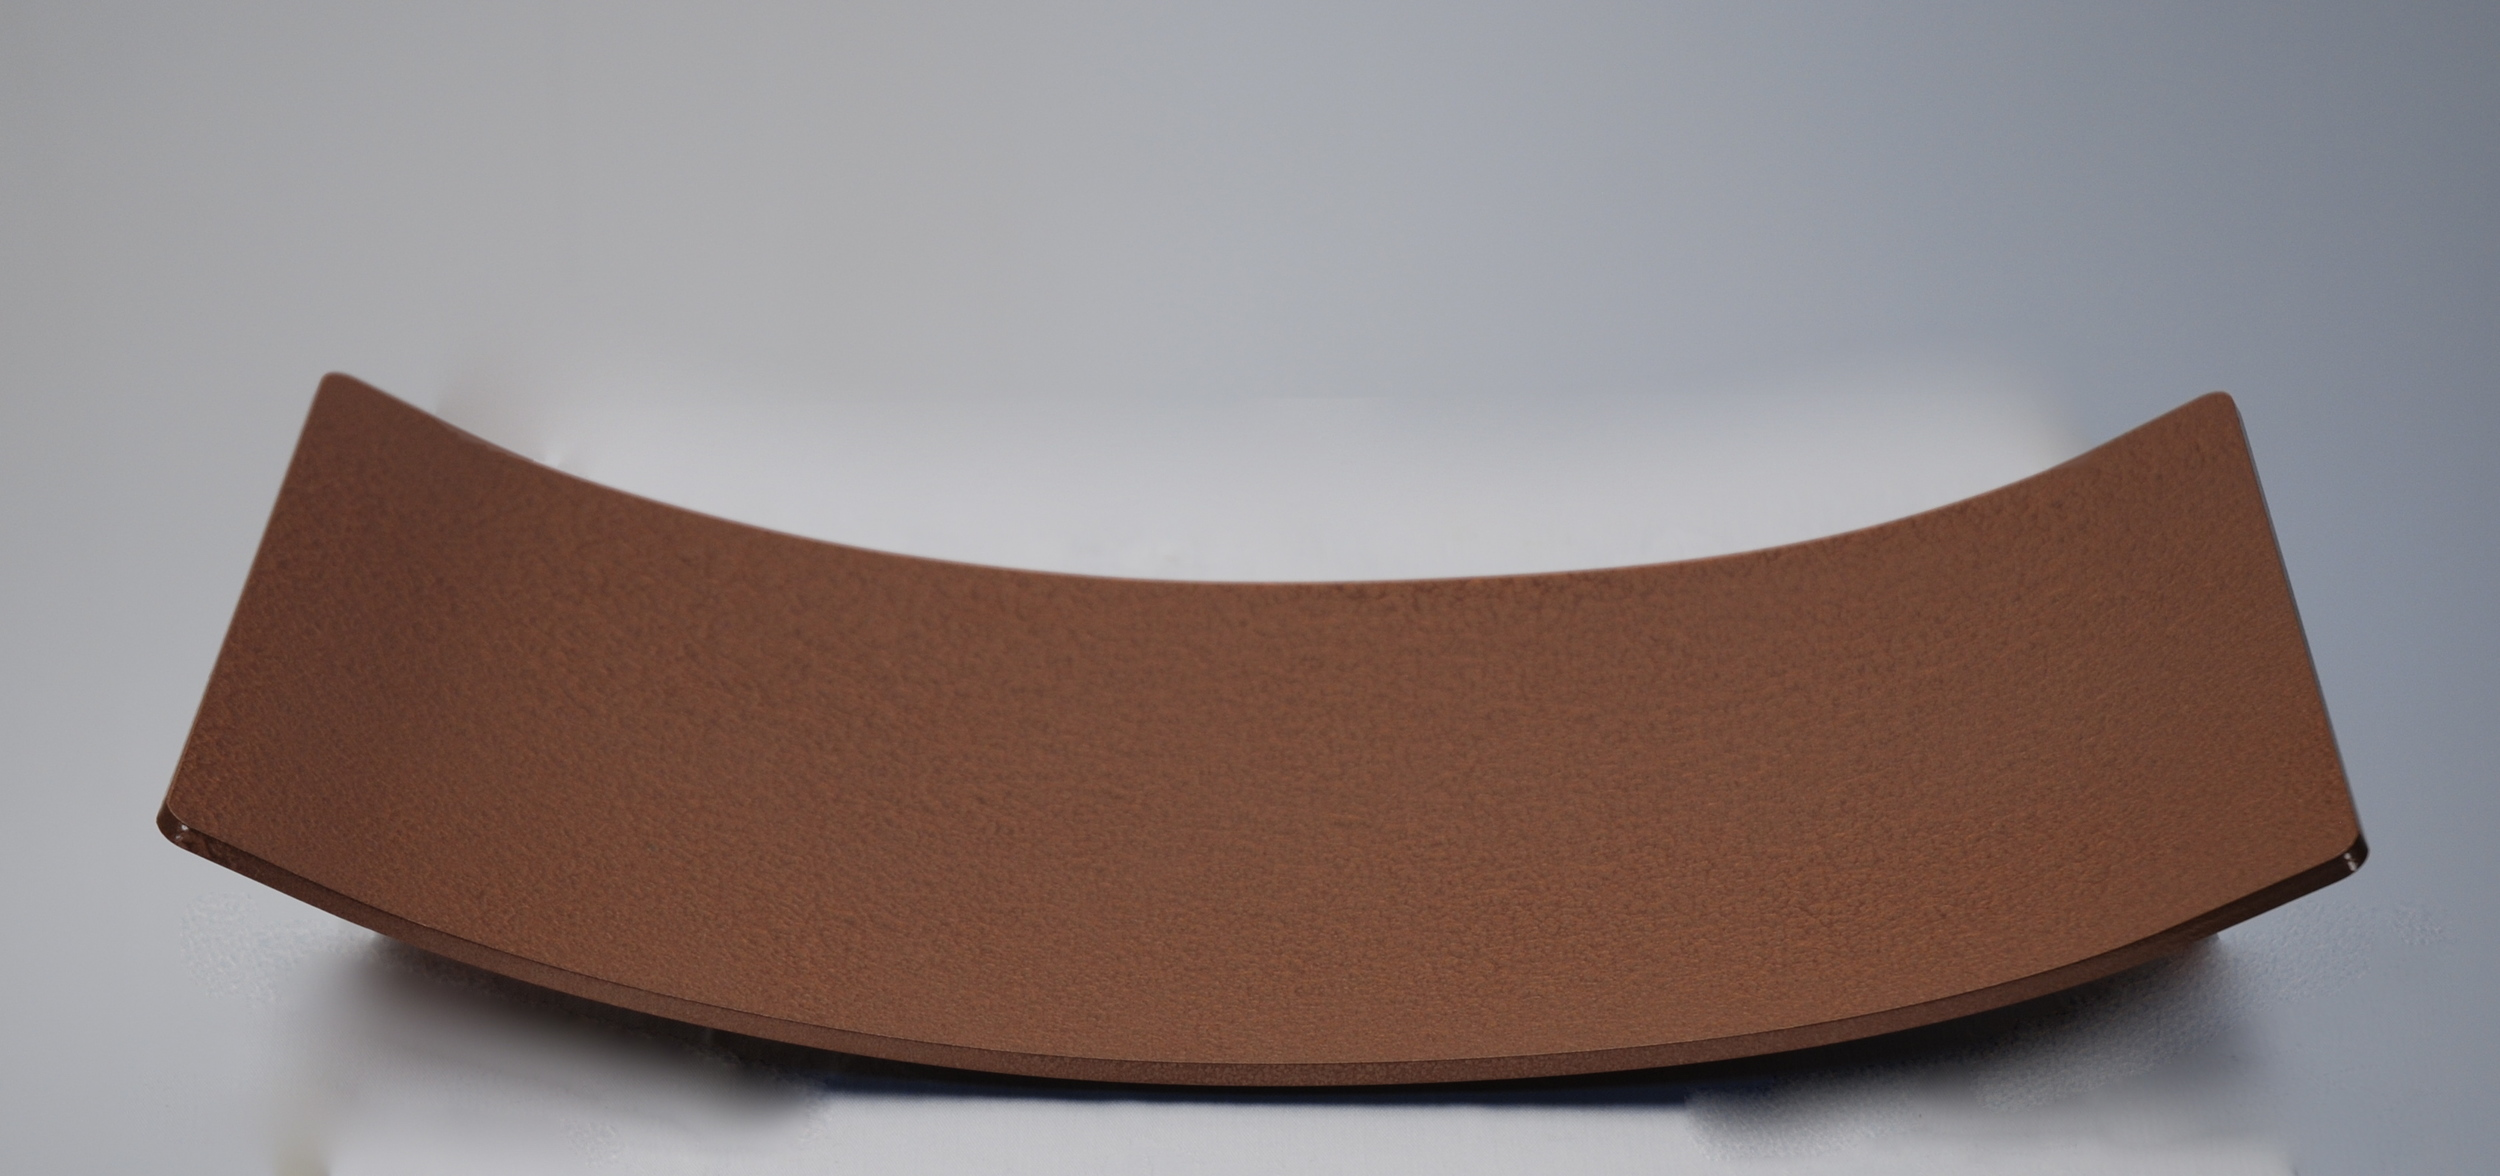 Metal Arc Bowl w/ Hammered Copper Finish